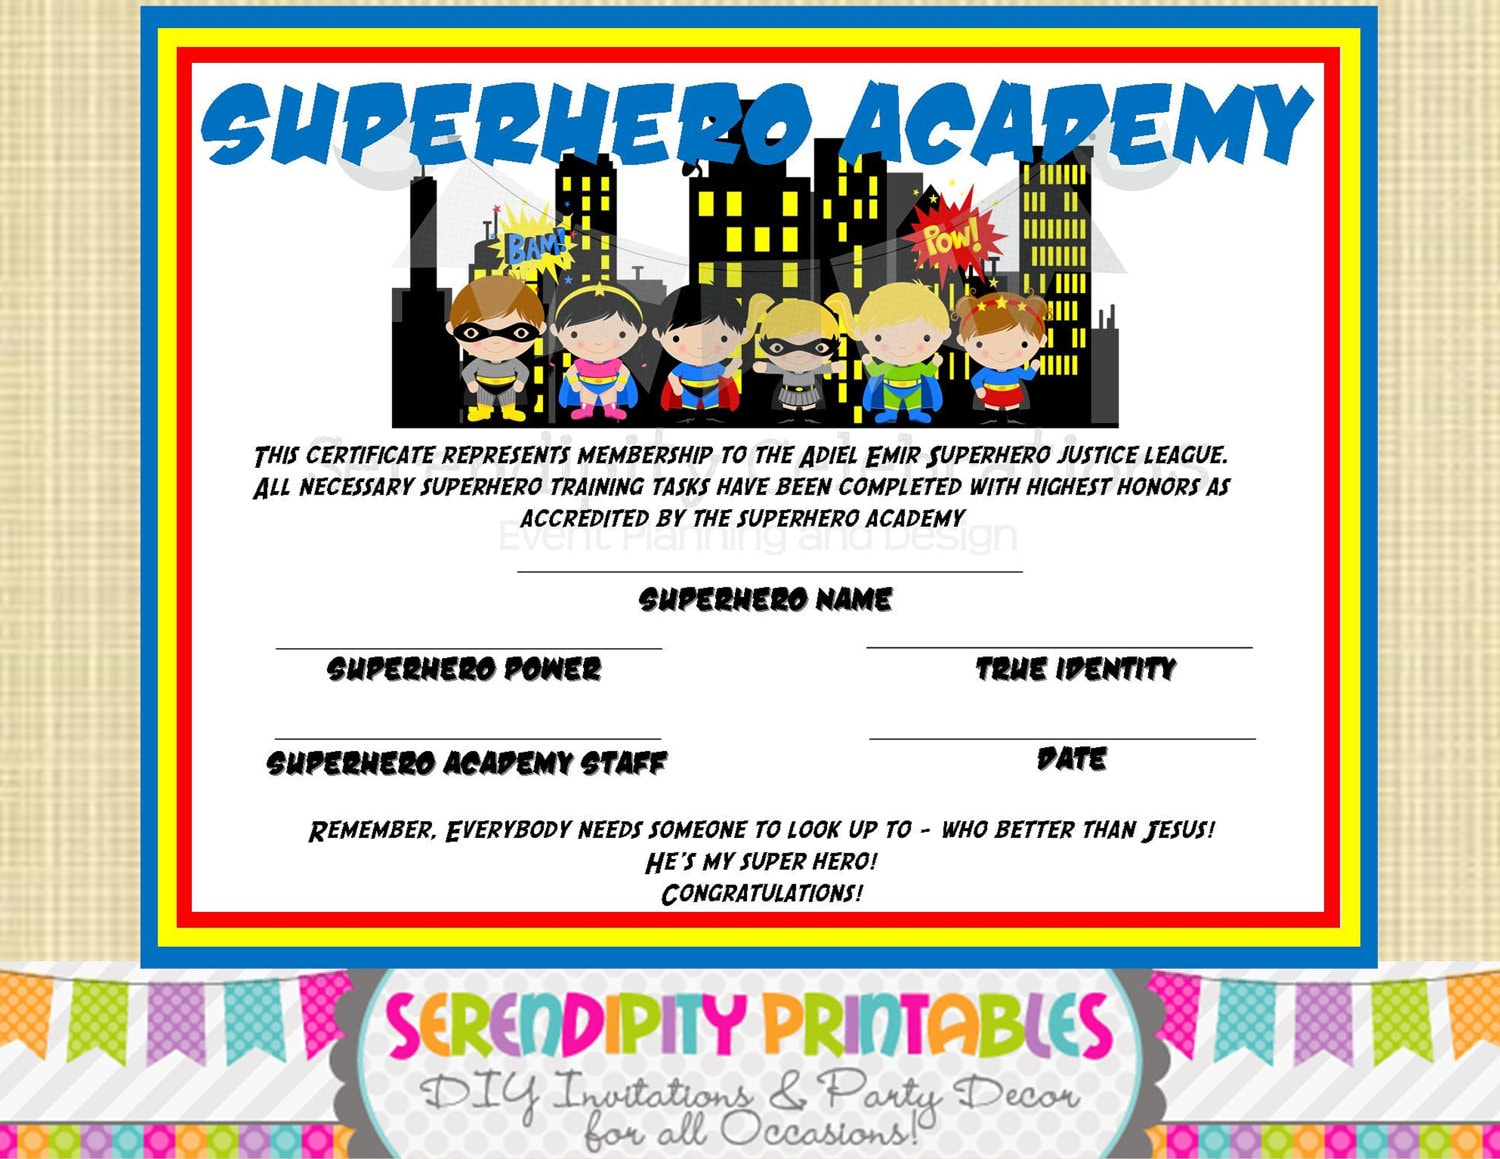 Astounding image intended for superhero certificate printable